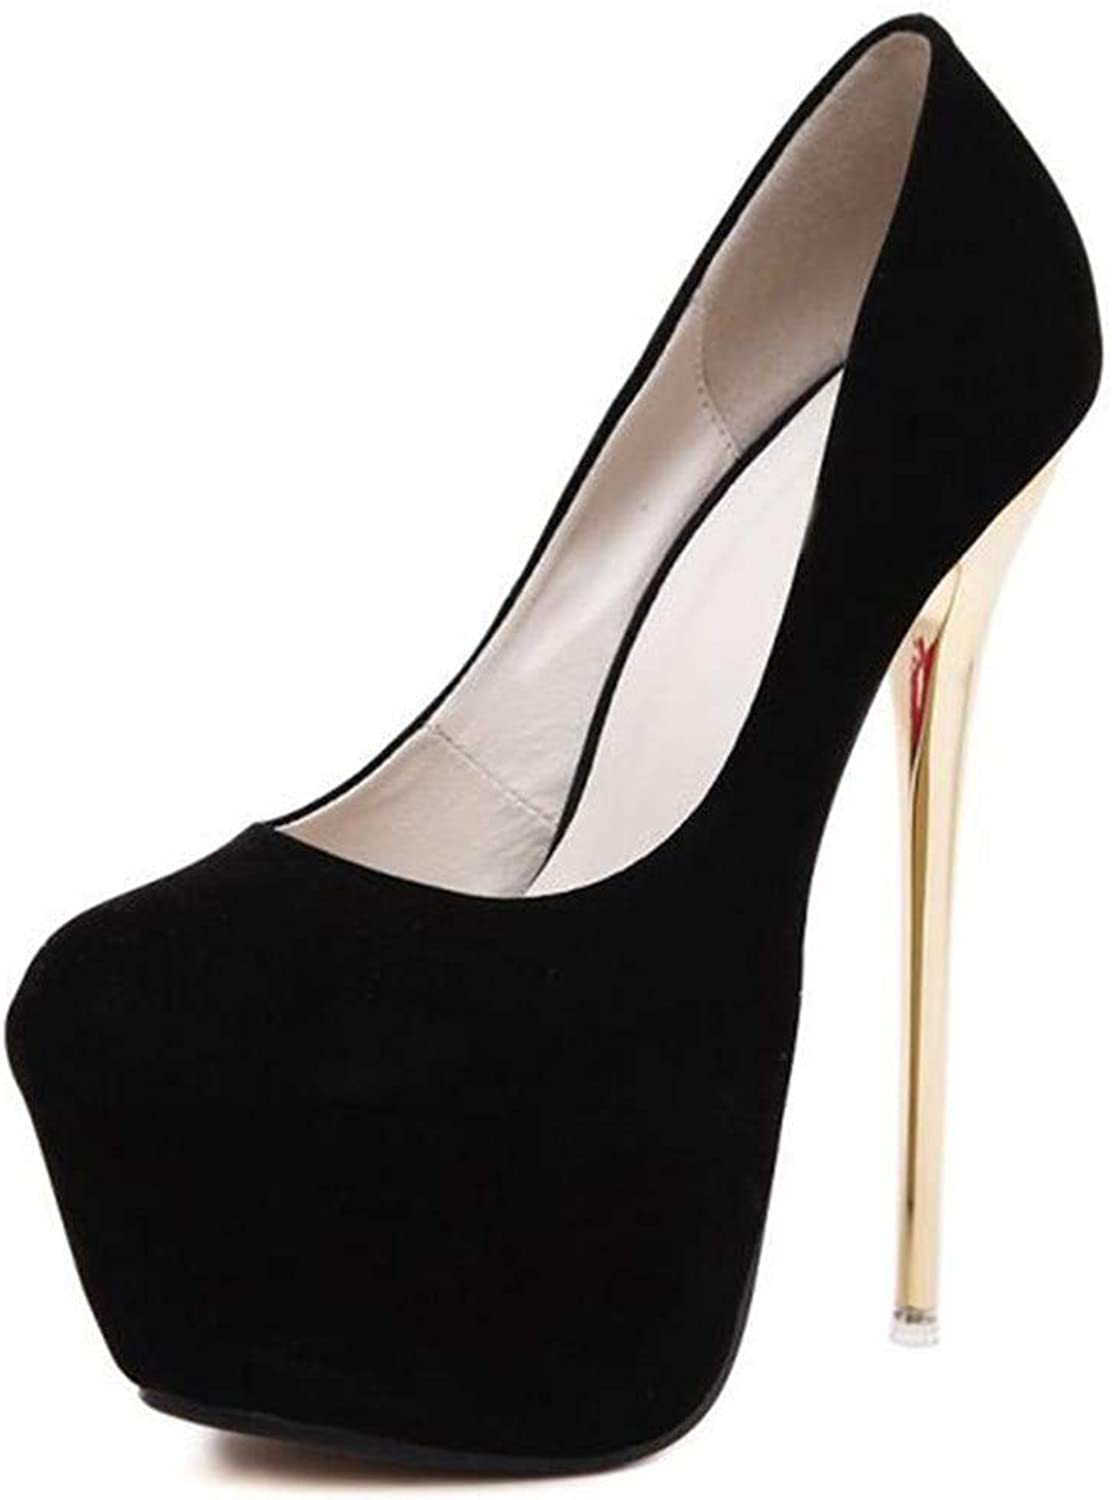 Sam Look Sexy high-Heeled shoes Wedding shoes Simple high-Heeled shoes Flocking shoes 16cm